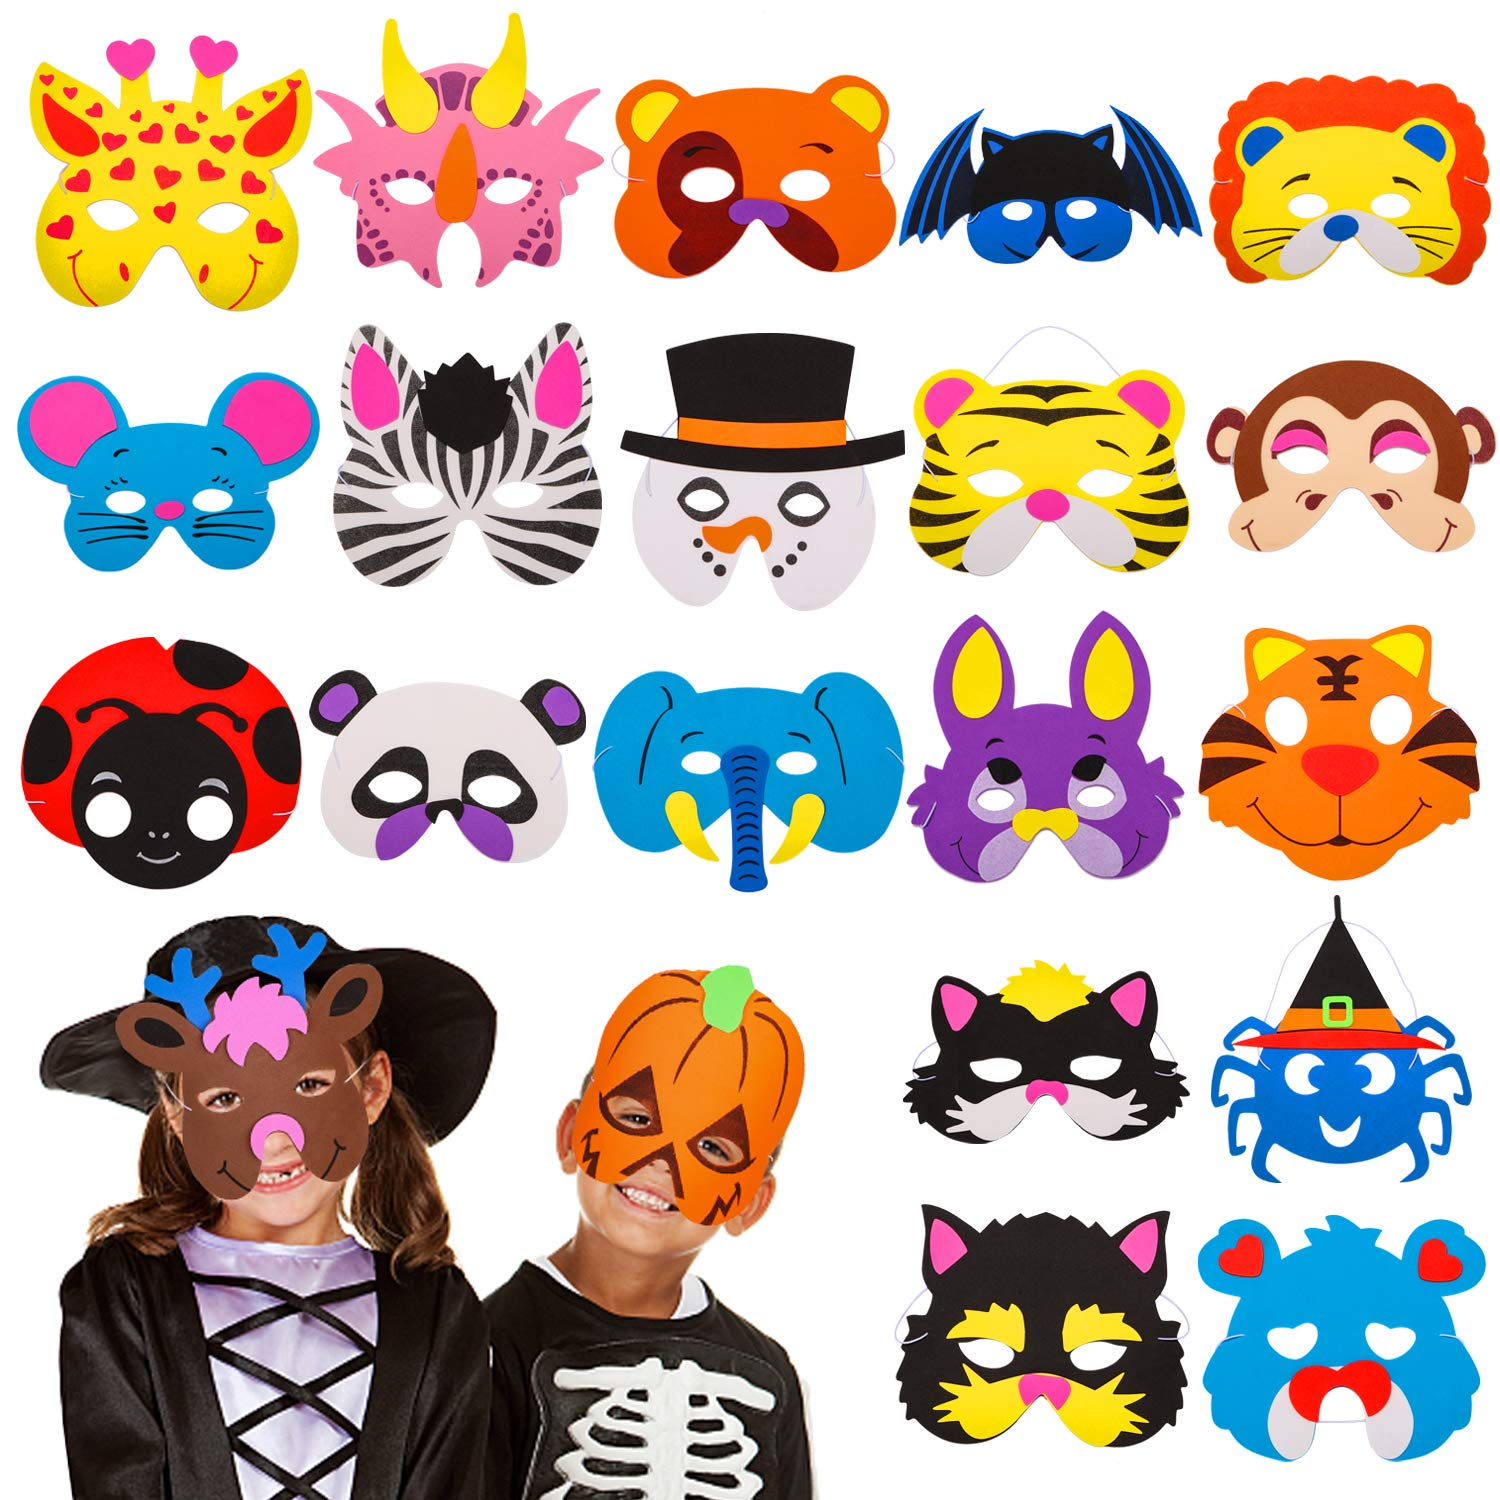 24 Pieces Foam DIY Animal Kids Masks for Christmas Birthday Party Favor Dress Up Animal Masks Birthday Goodie Bags for Kids